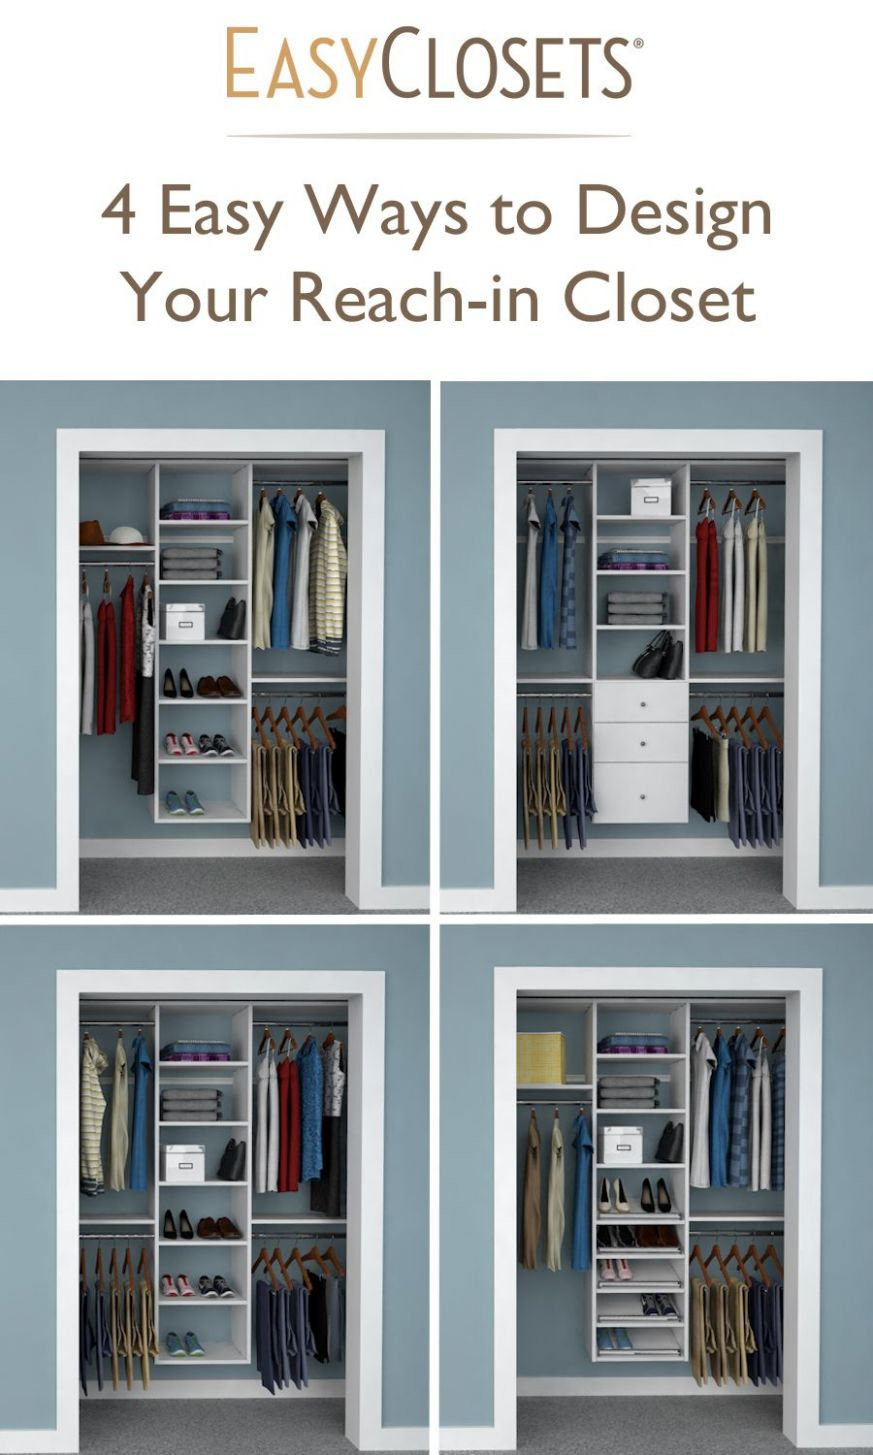 Infographic: 10 Easy Ways to Design Your Reach-in Closet | Closet ...